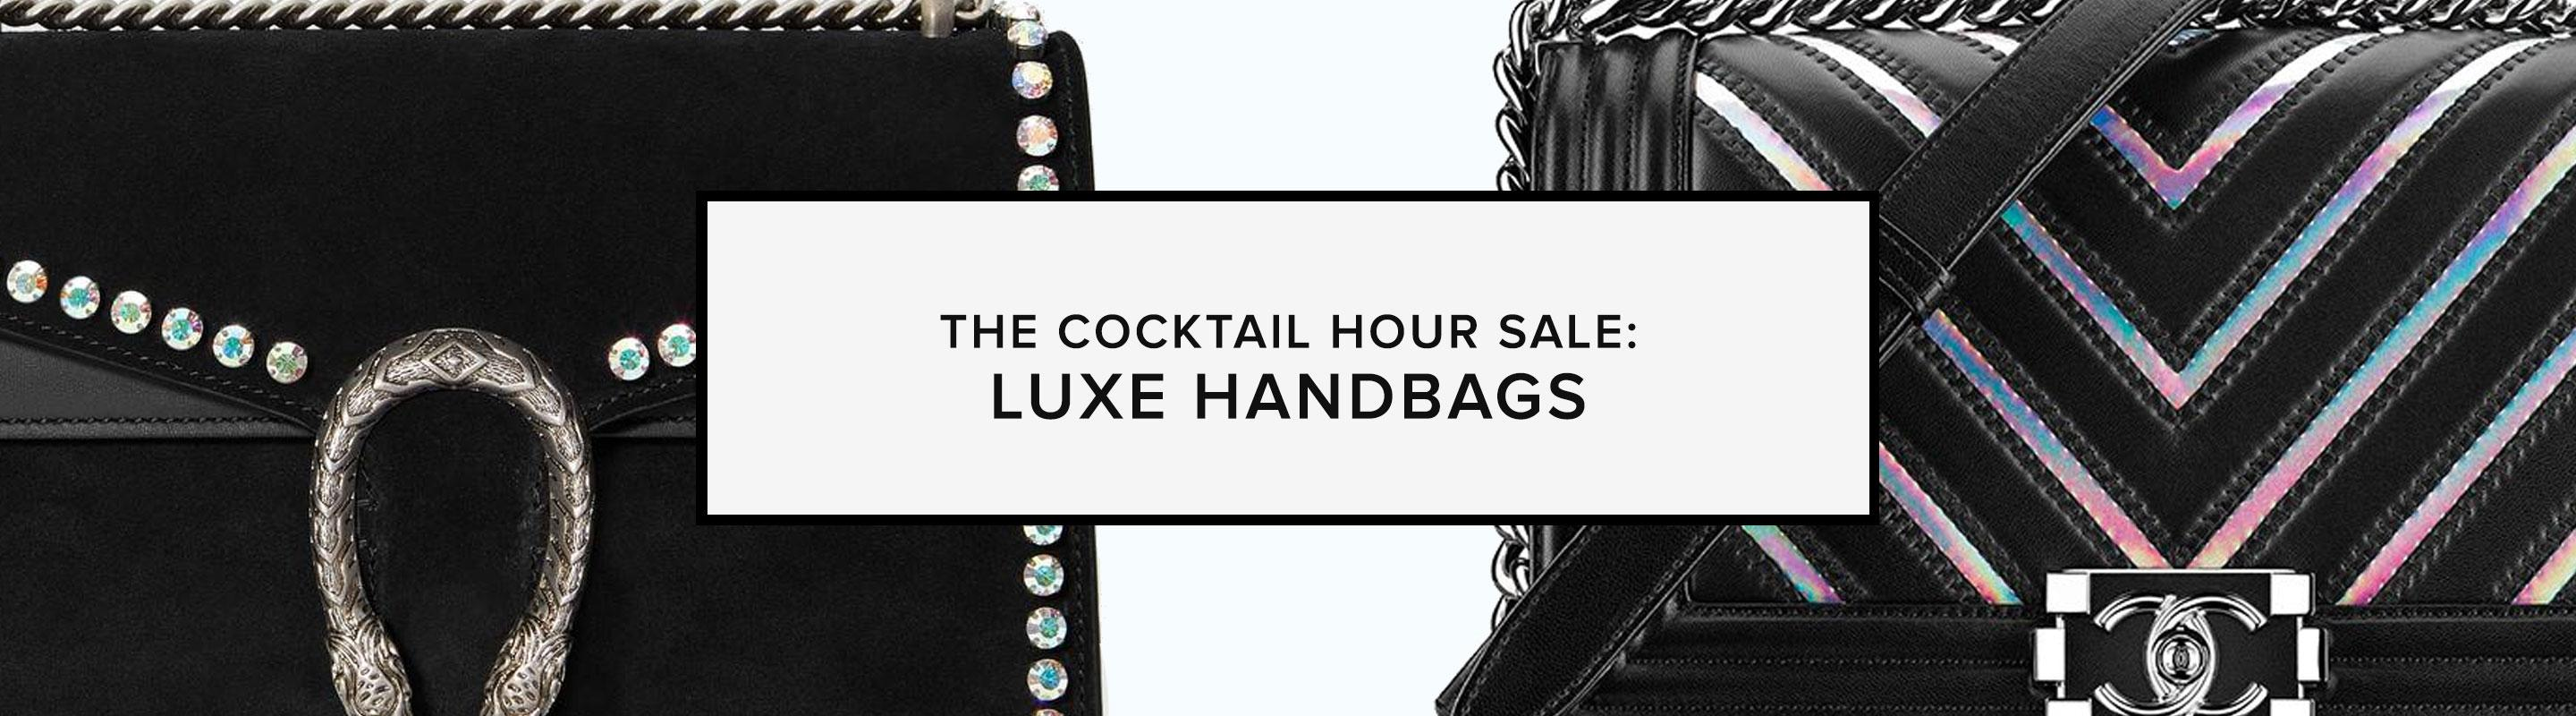 The Cocktail Hour Sale: Luxe Handbags